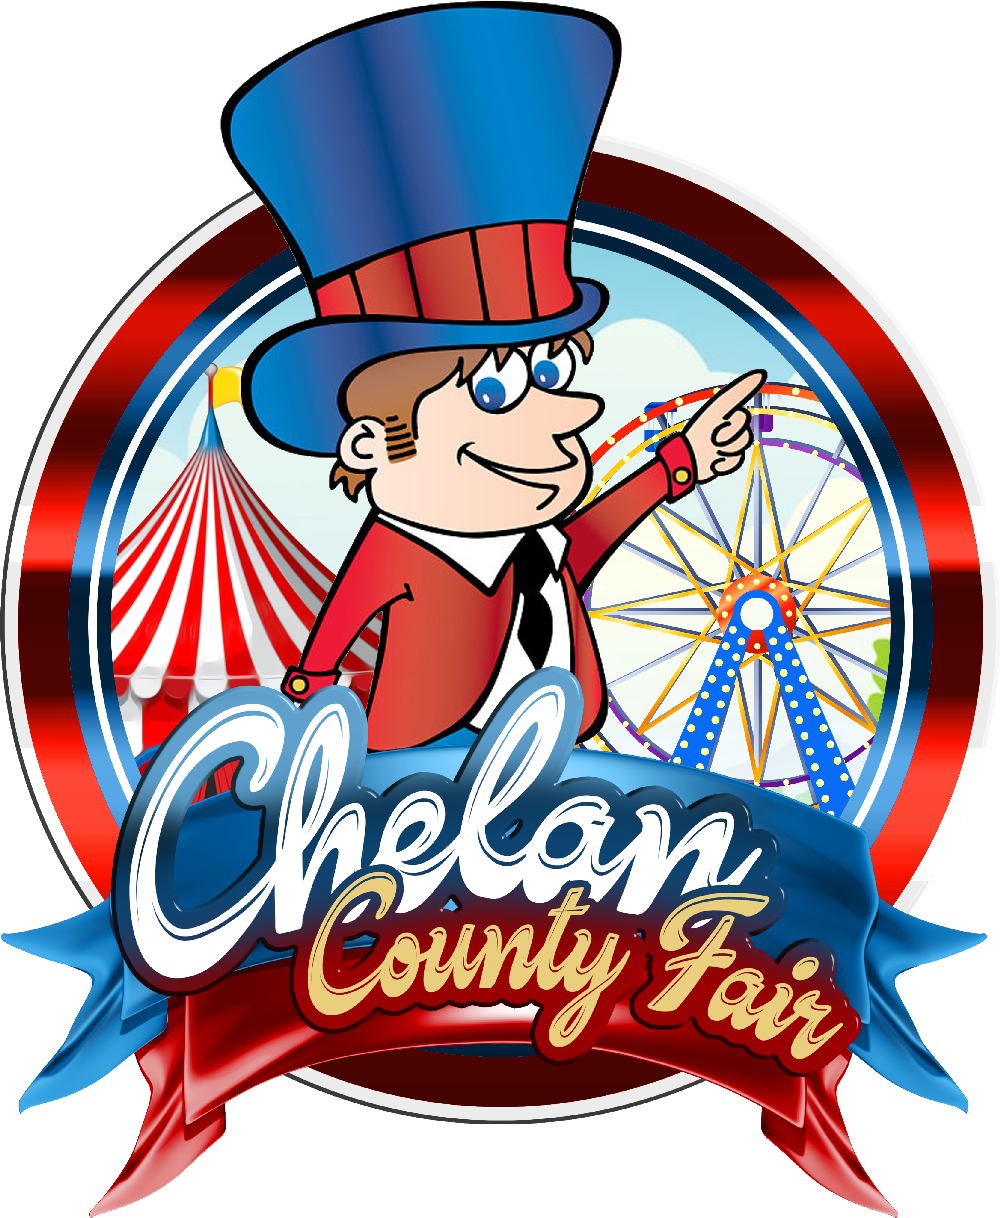 Chelan County Fair Logo